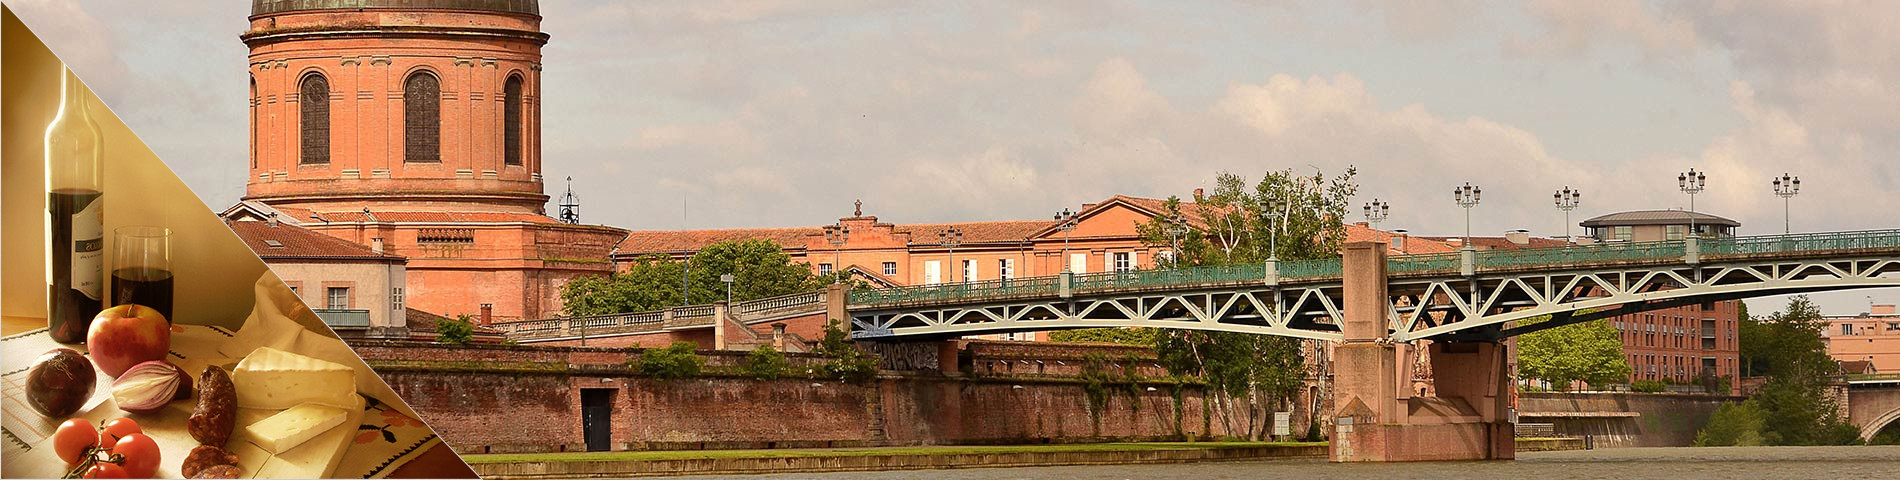 Toulouse - Français & Culture